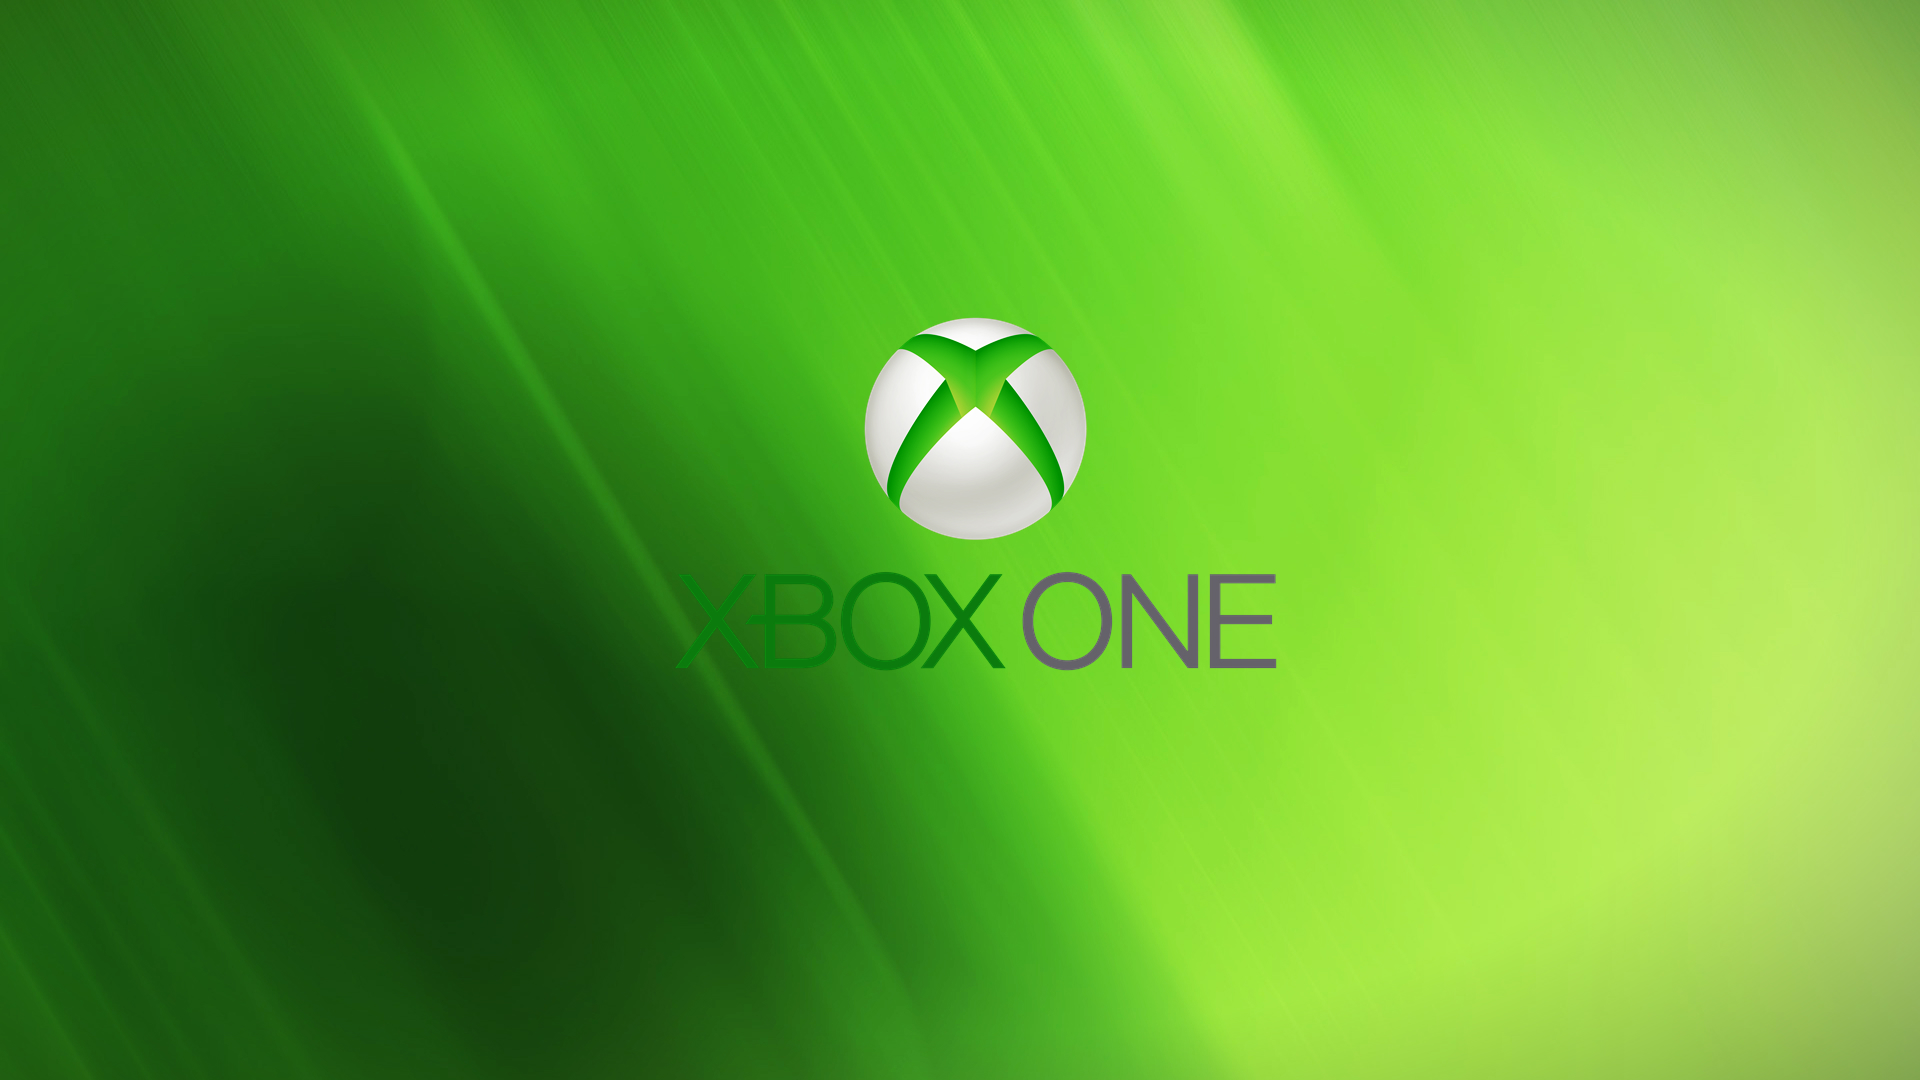 Xbox One Wallpaper HD